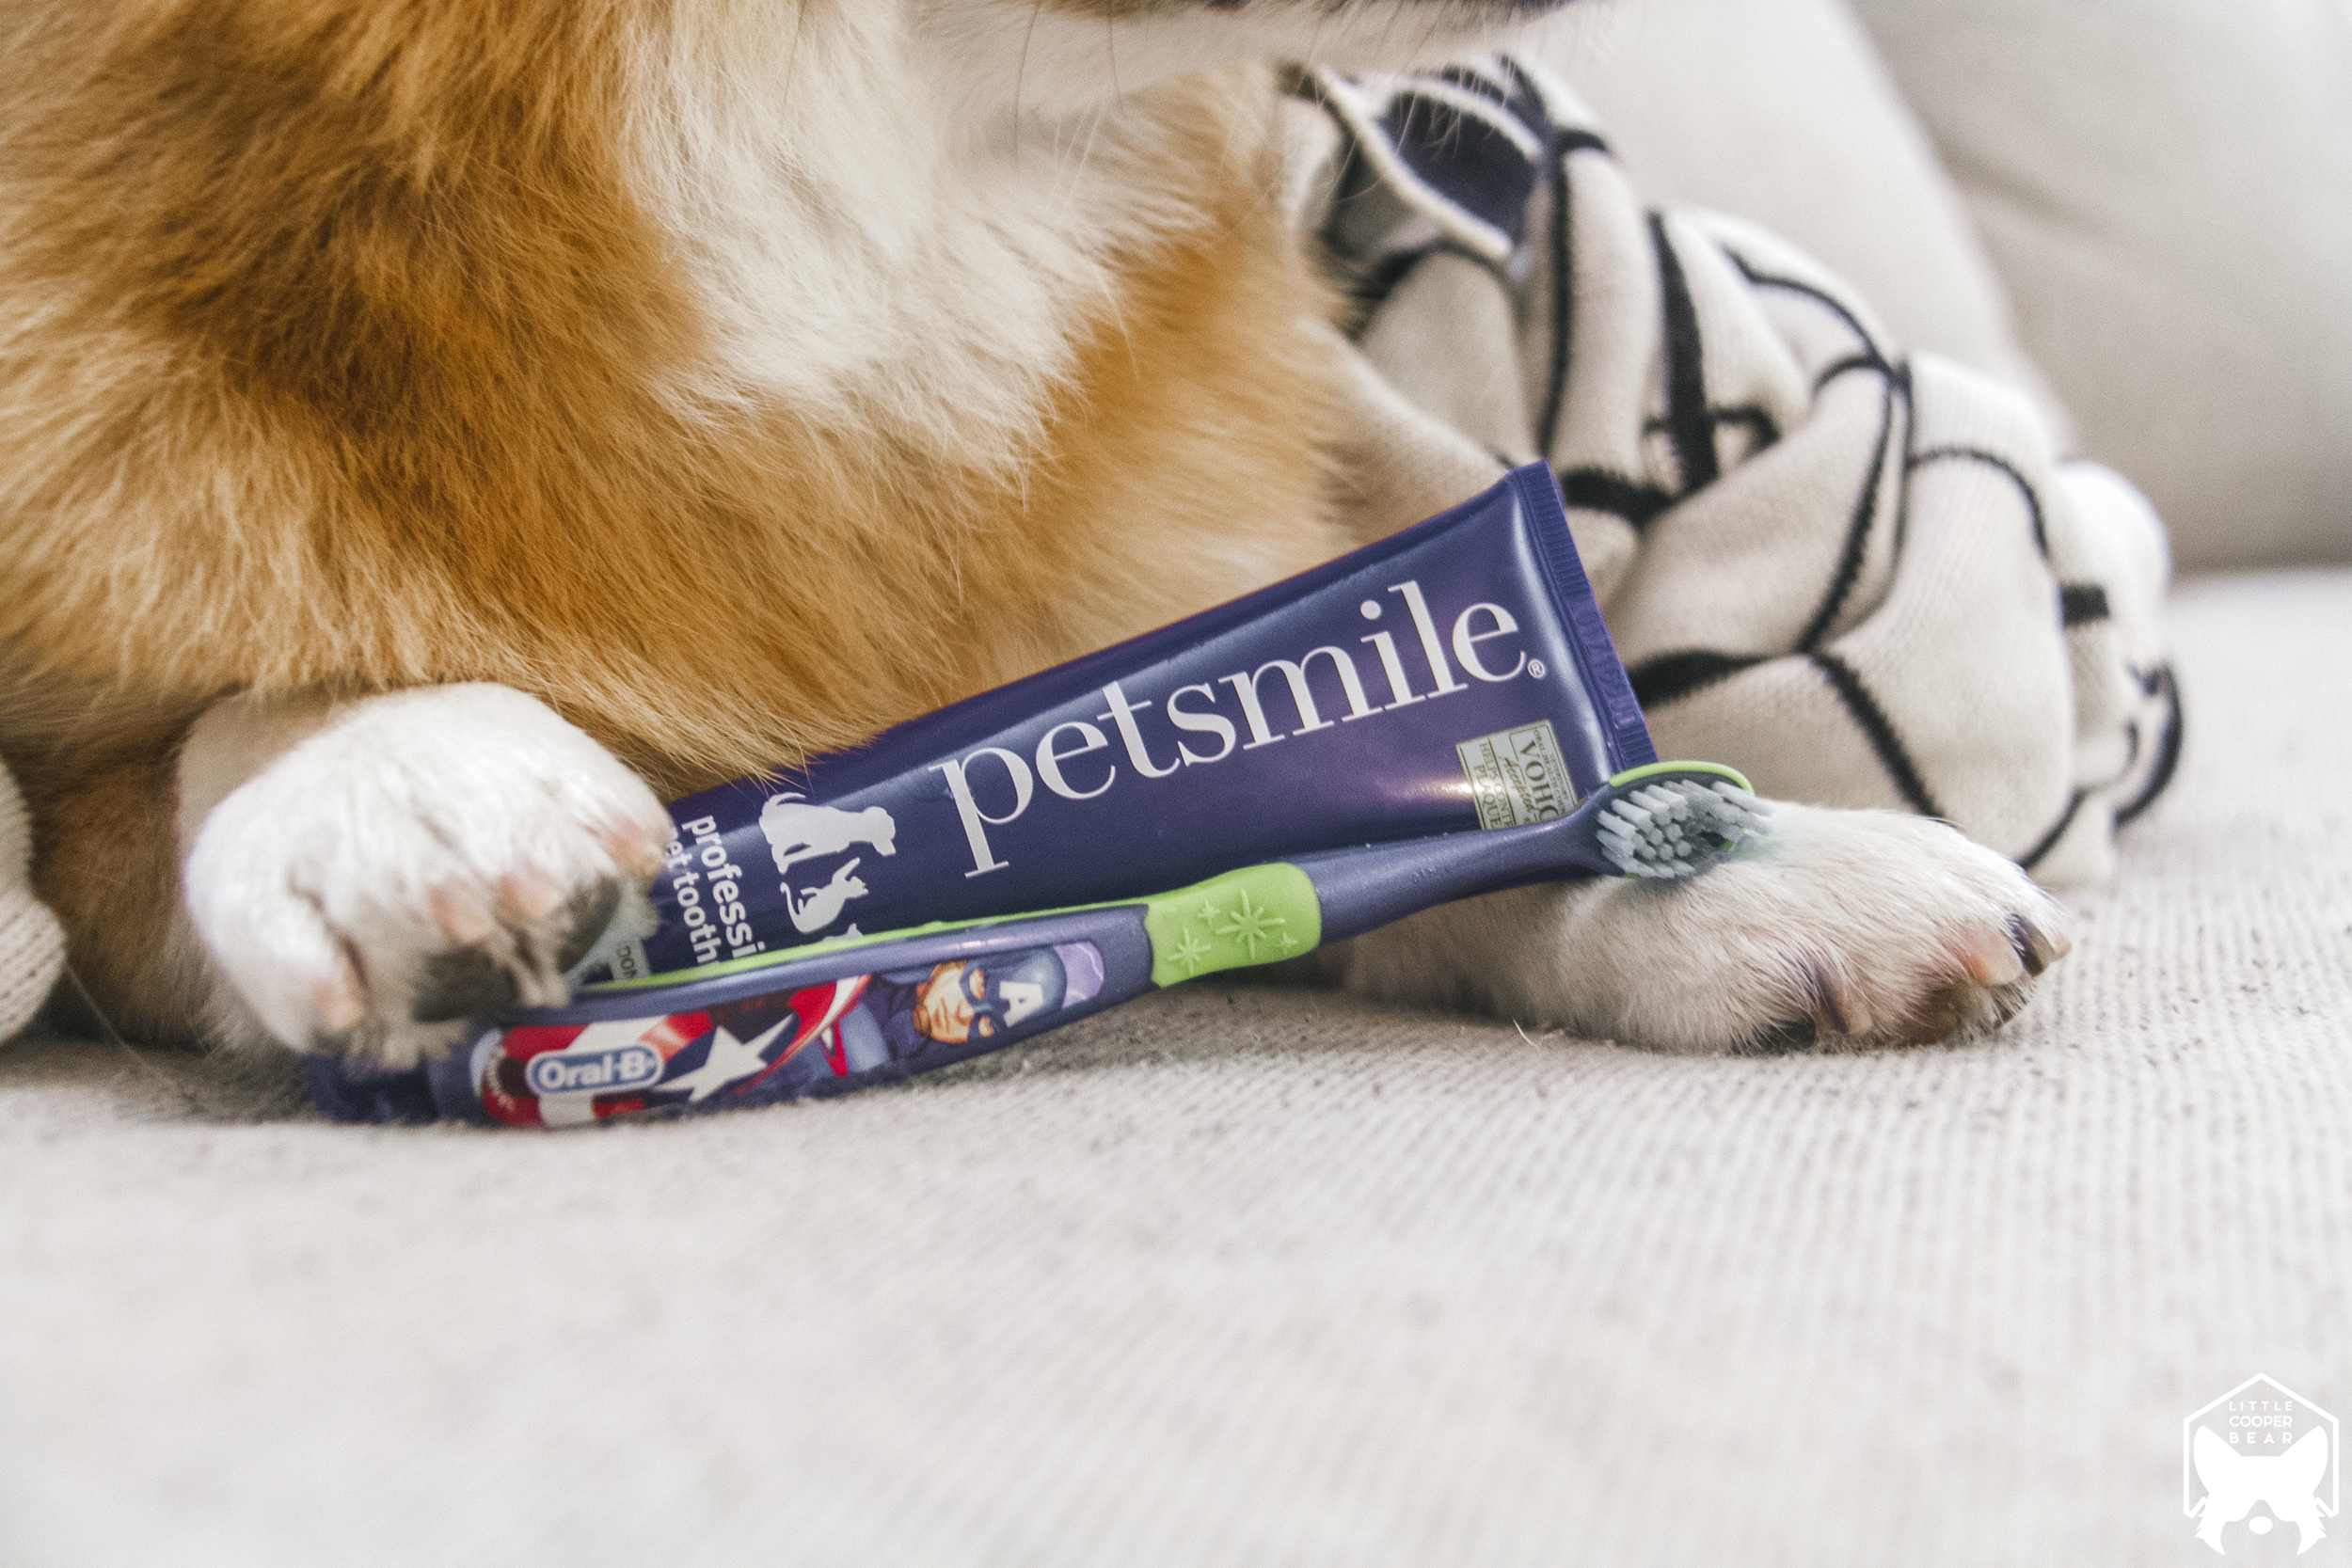 Cooper with his current tooth brushing products.PetSmile toothpaste has the seal of approval from the VOHC.